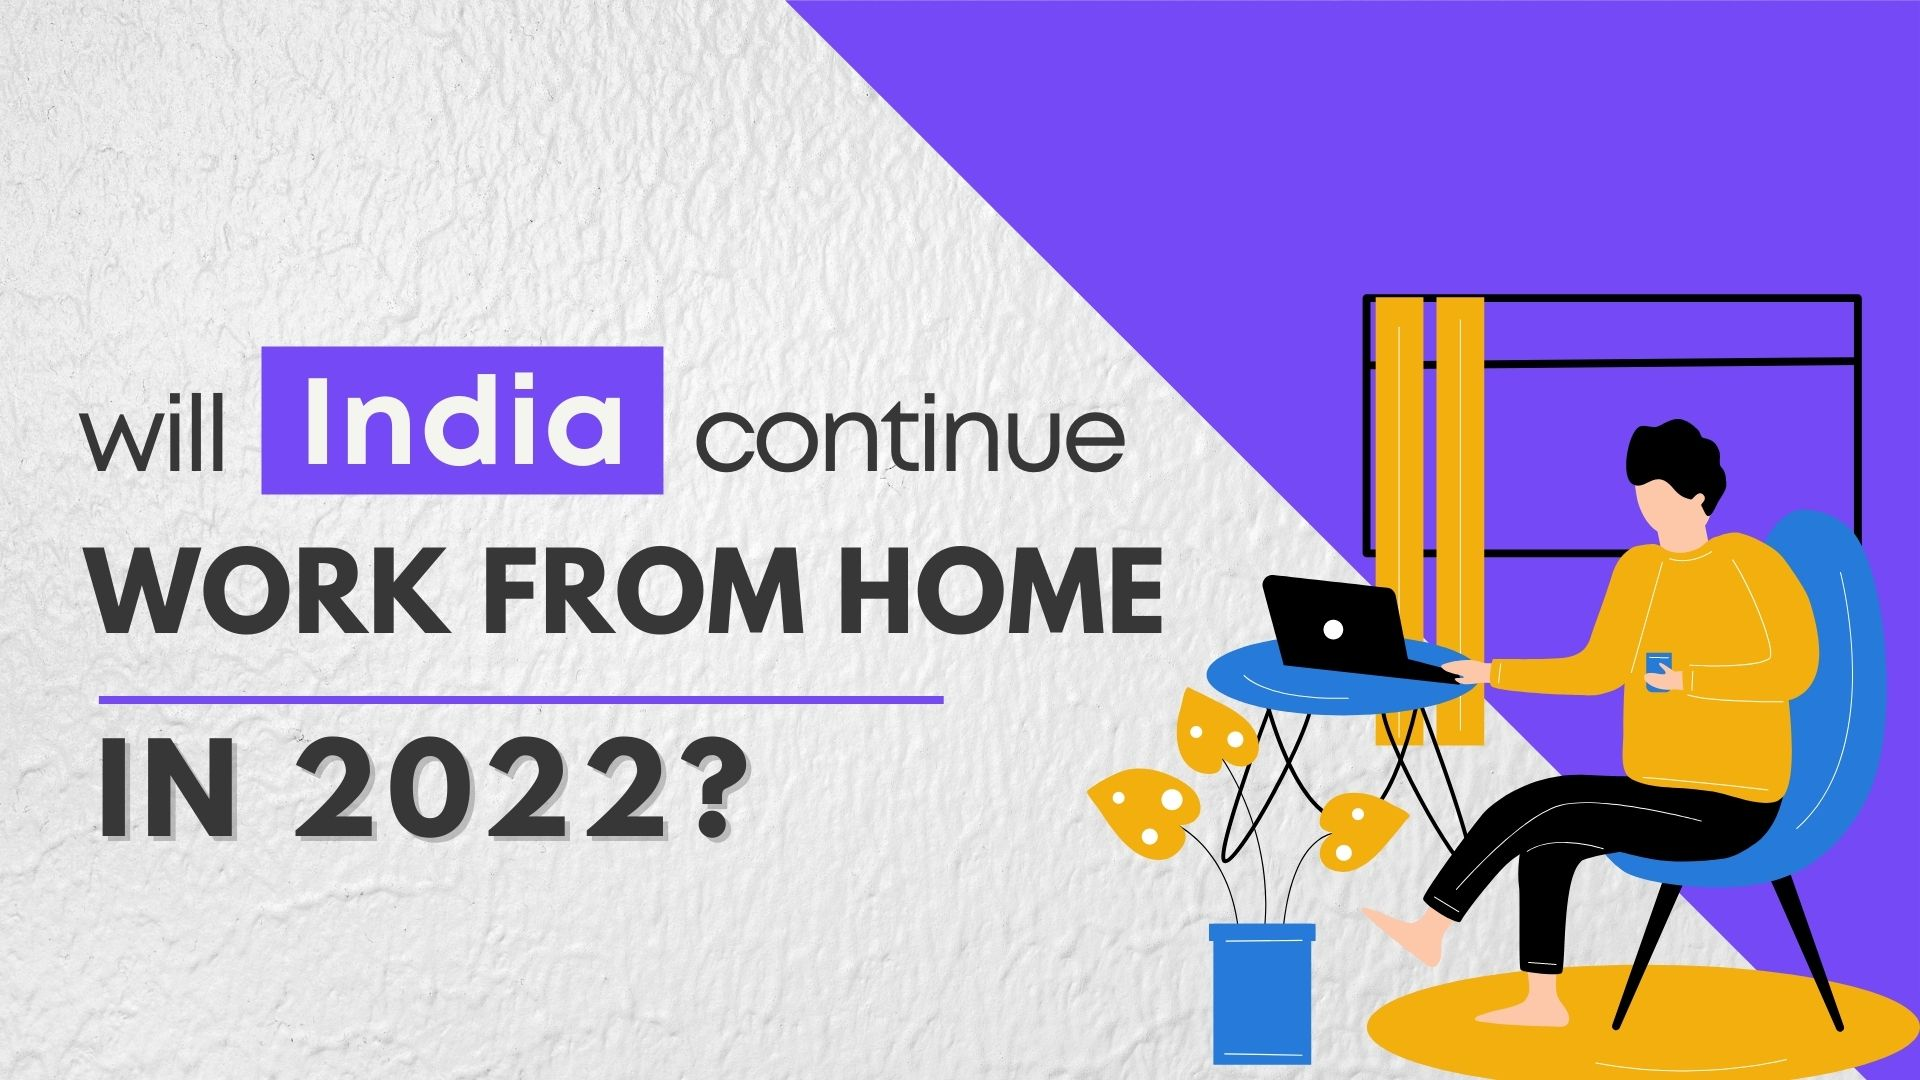 Will India Continue Working From Home in 2022?